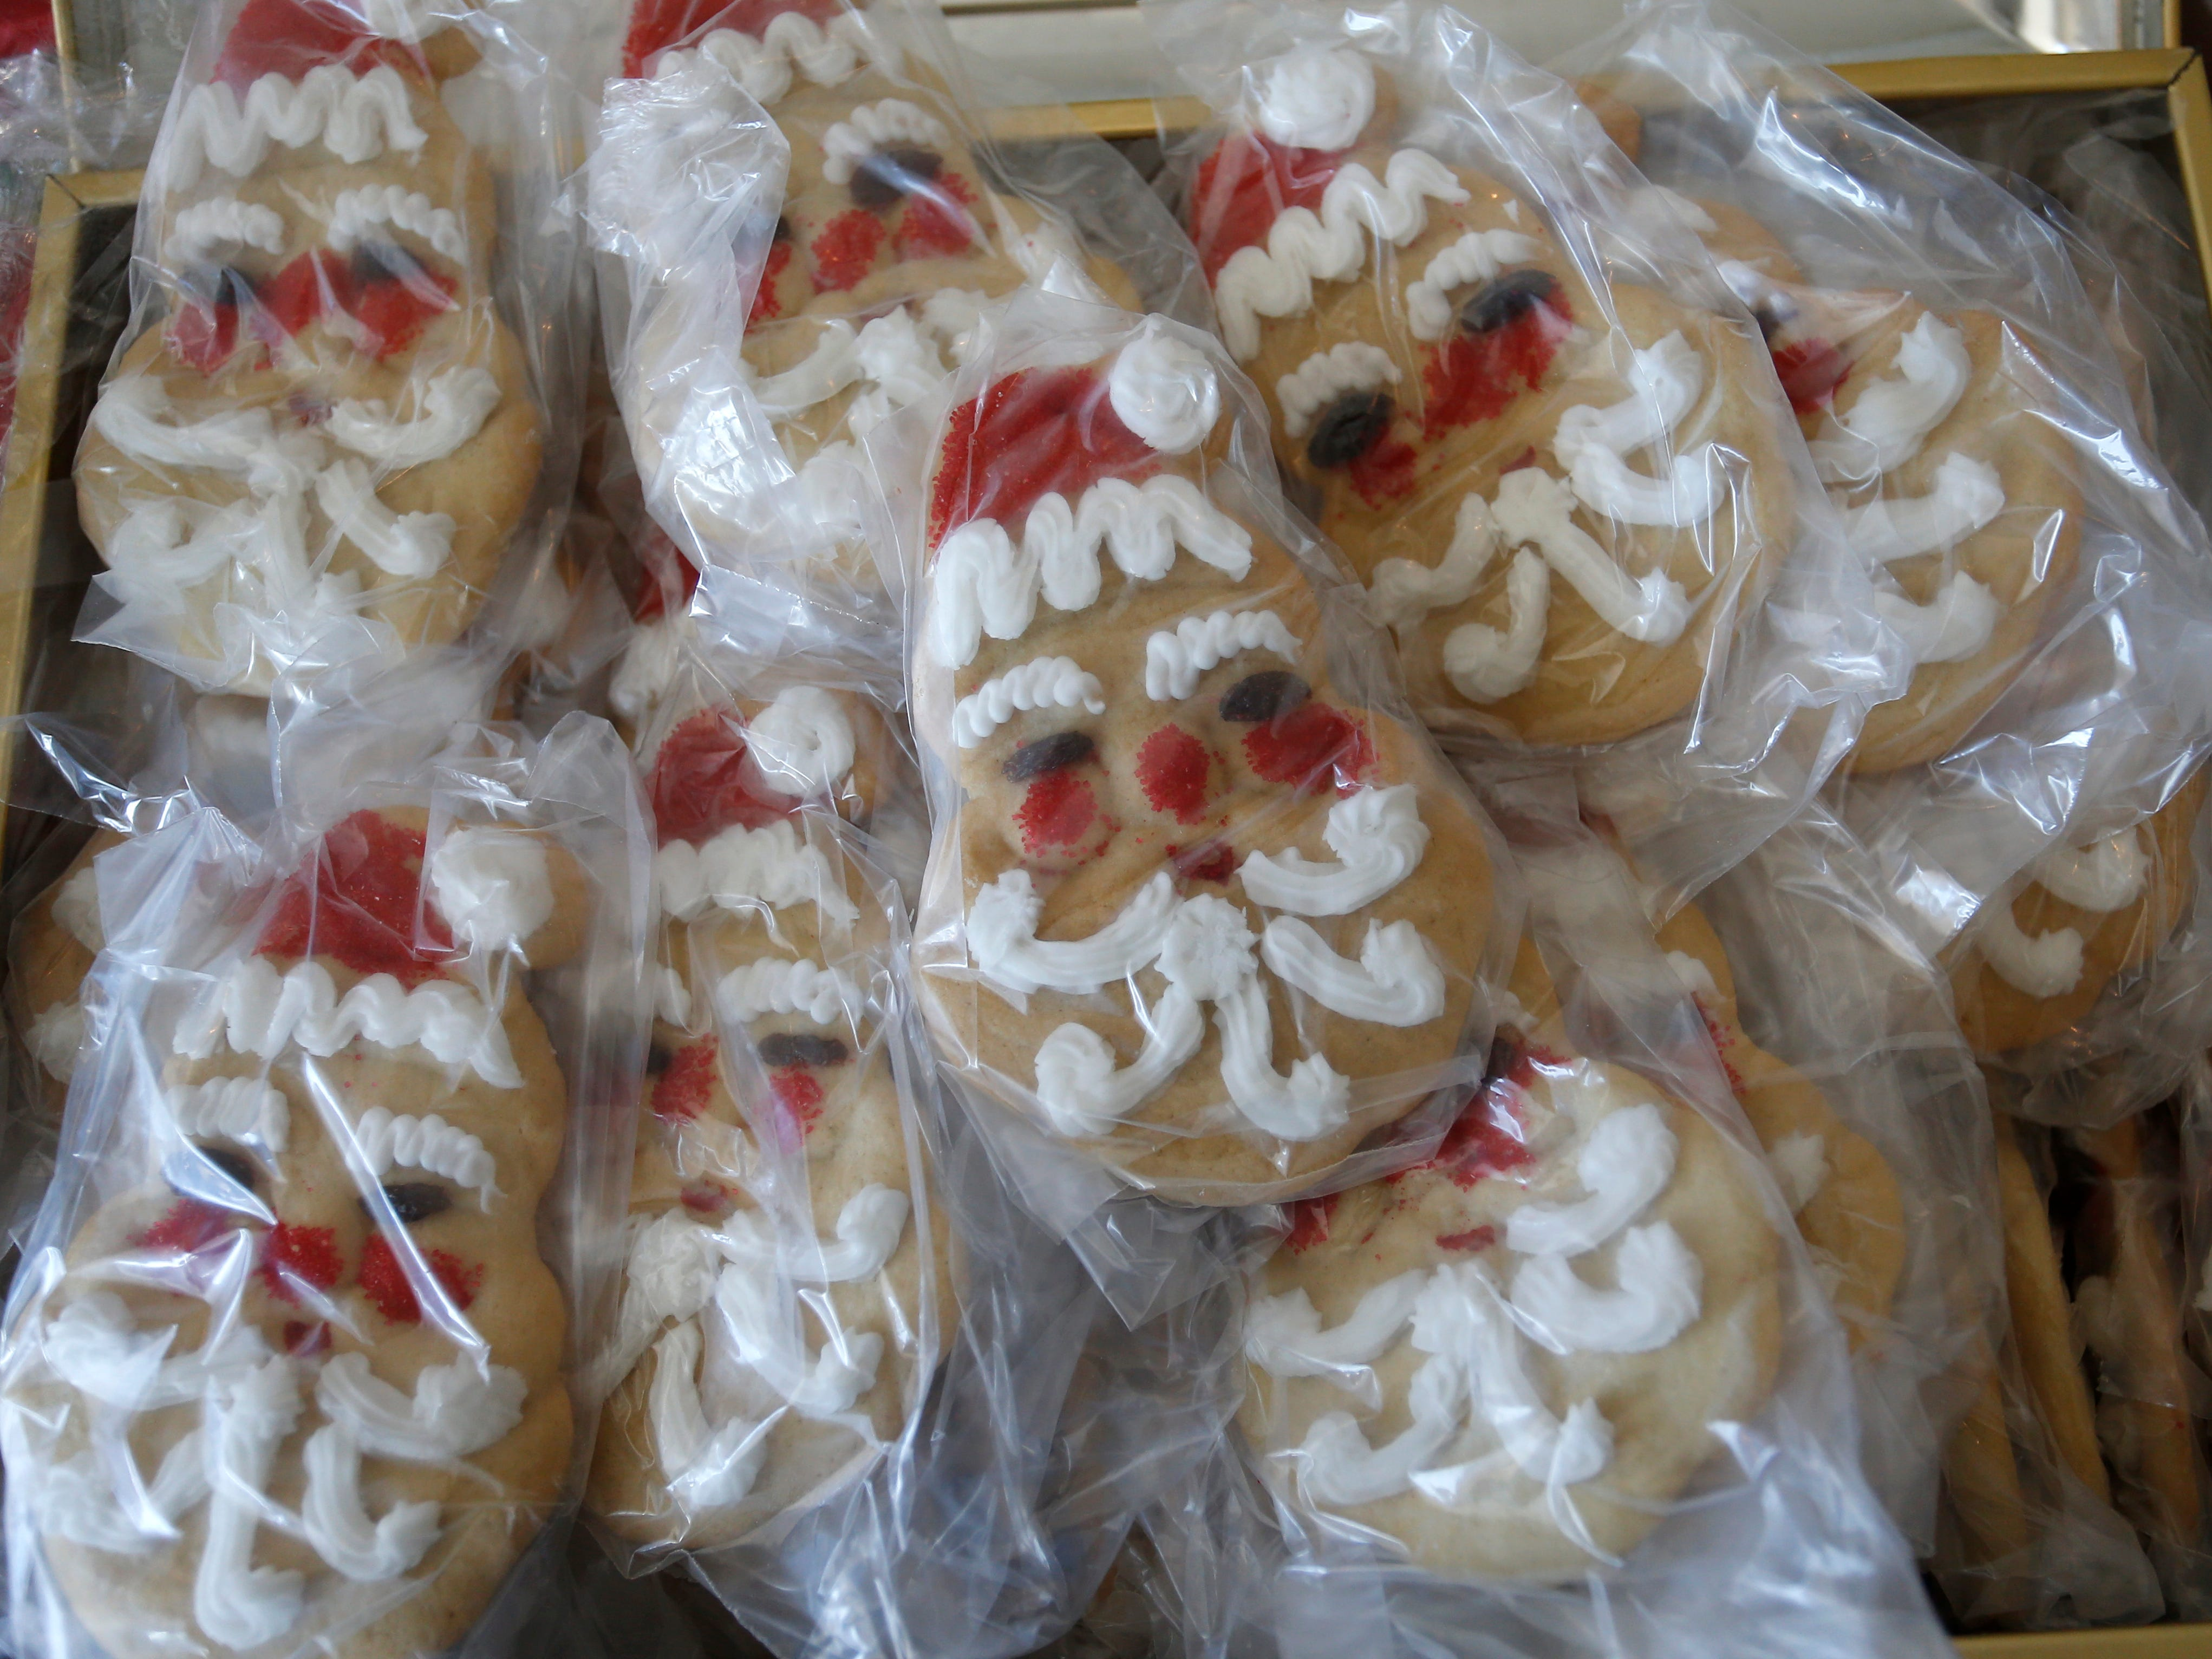 Santa head cookies at the Wotherspoon Christmas cookie extravaganza on Saturday, Dec. 15, 2018.